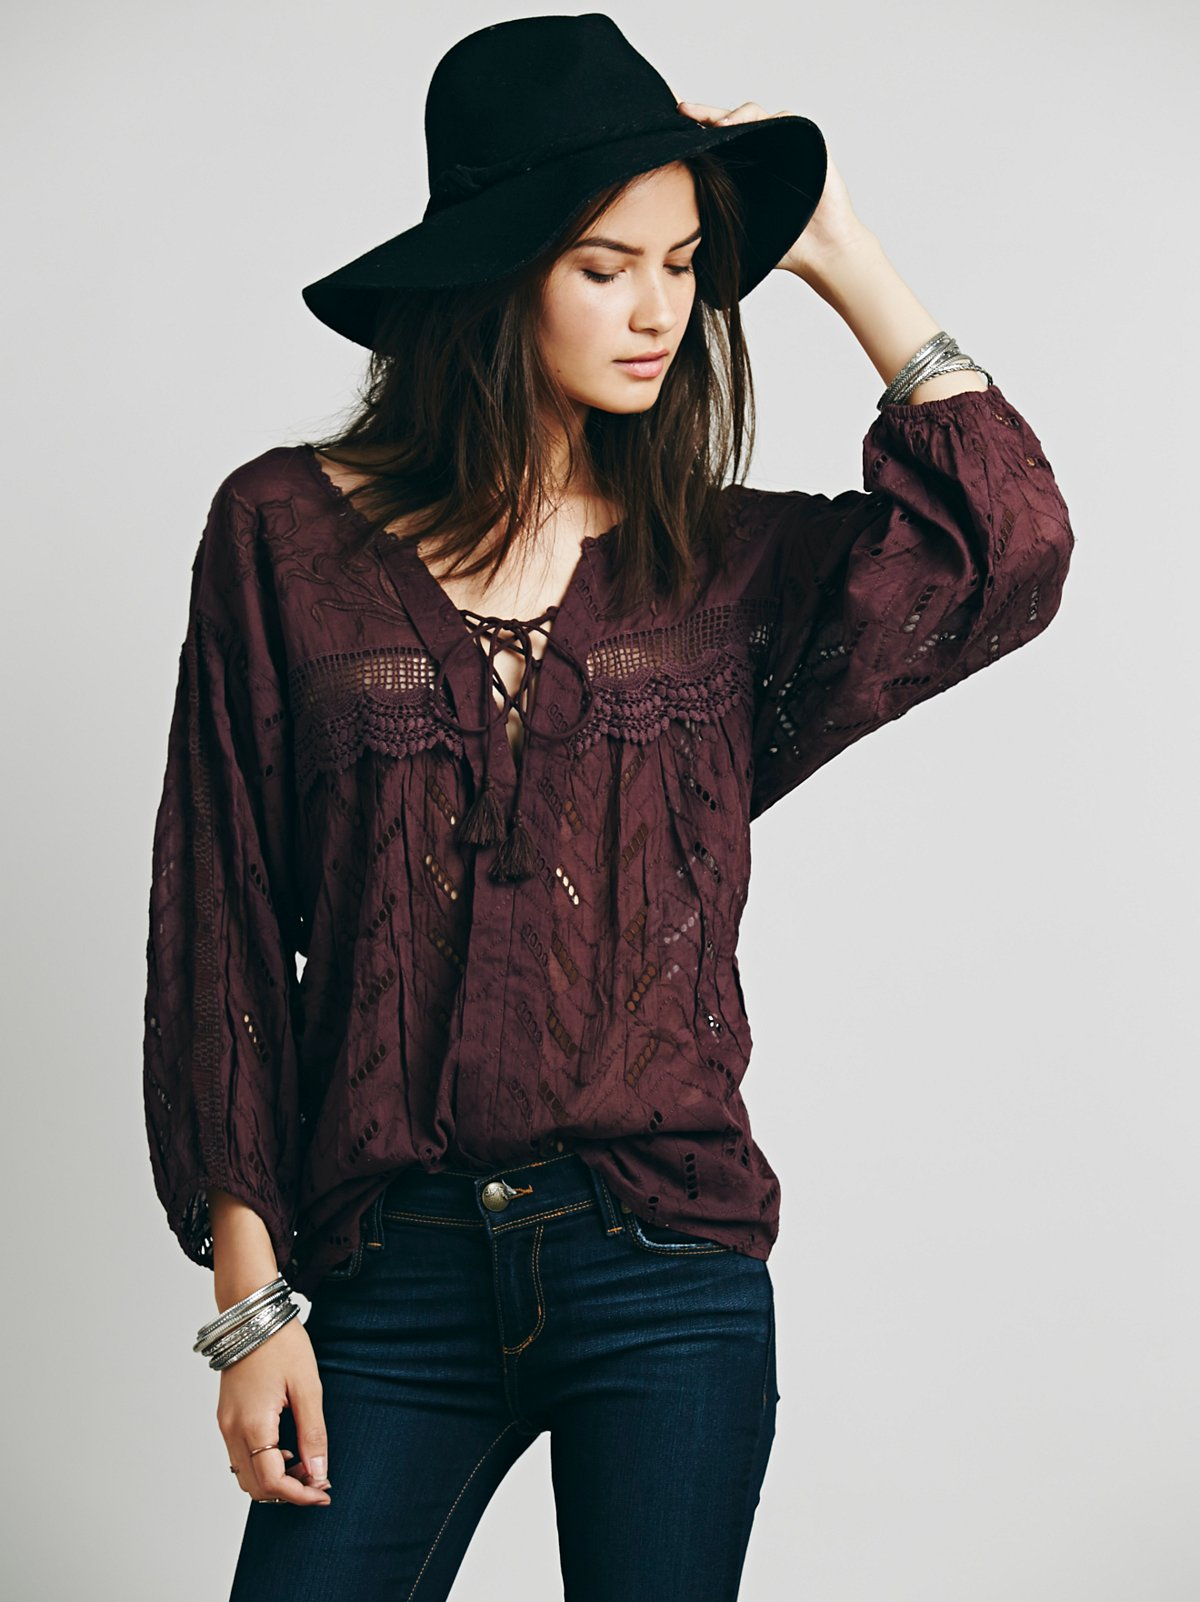 Eyelet Lace Up Peasant Top